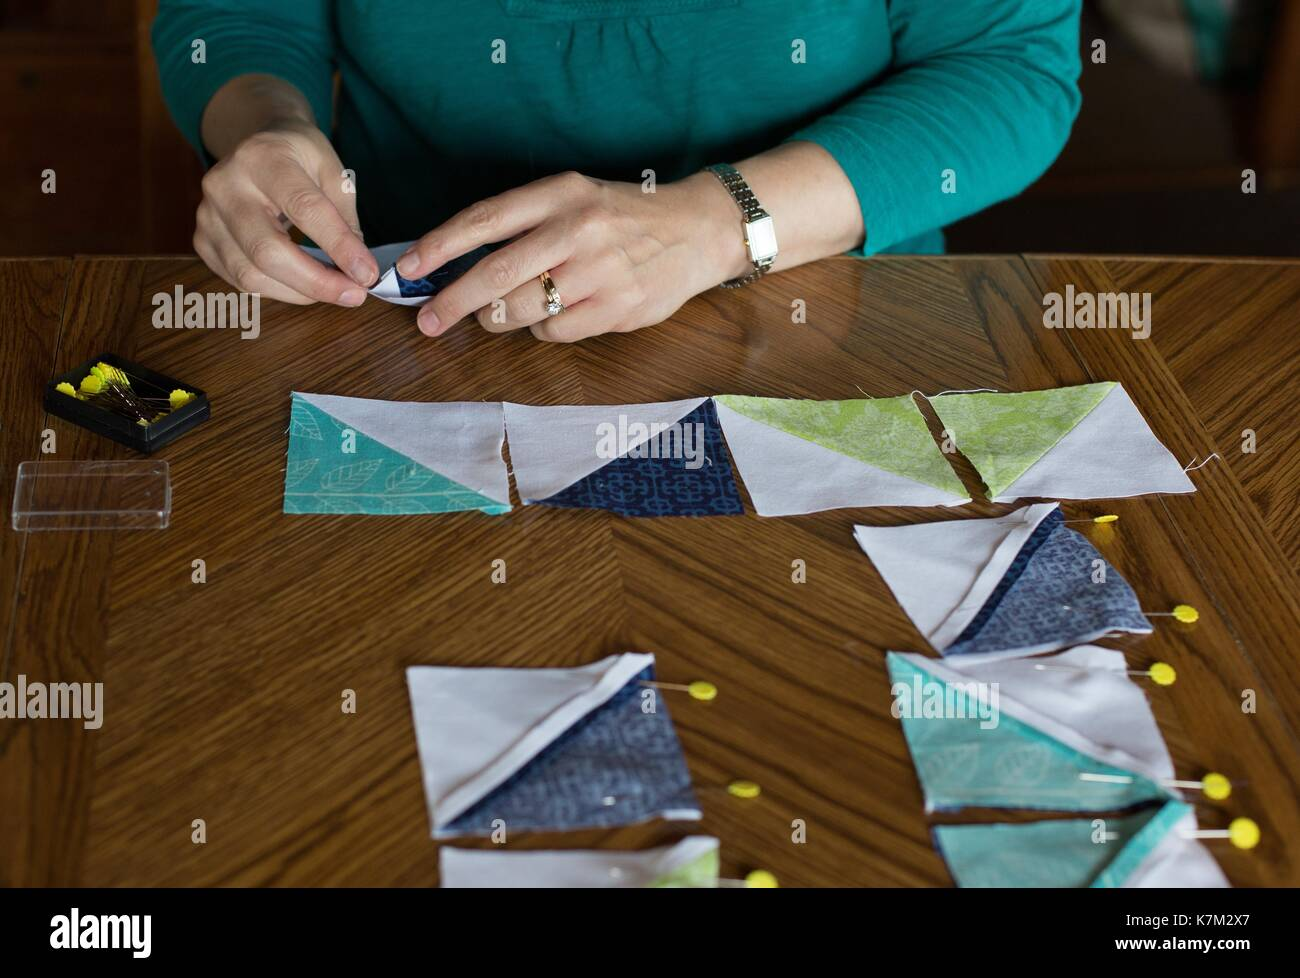 Close up of a person creating a quilt block. - Stock Image